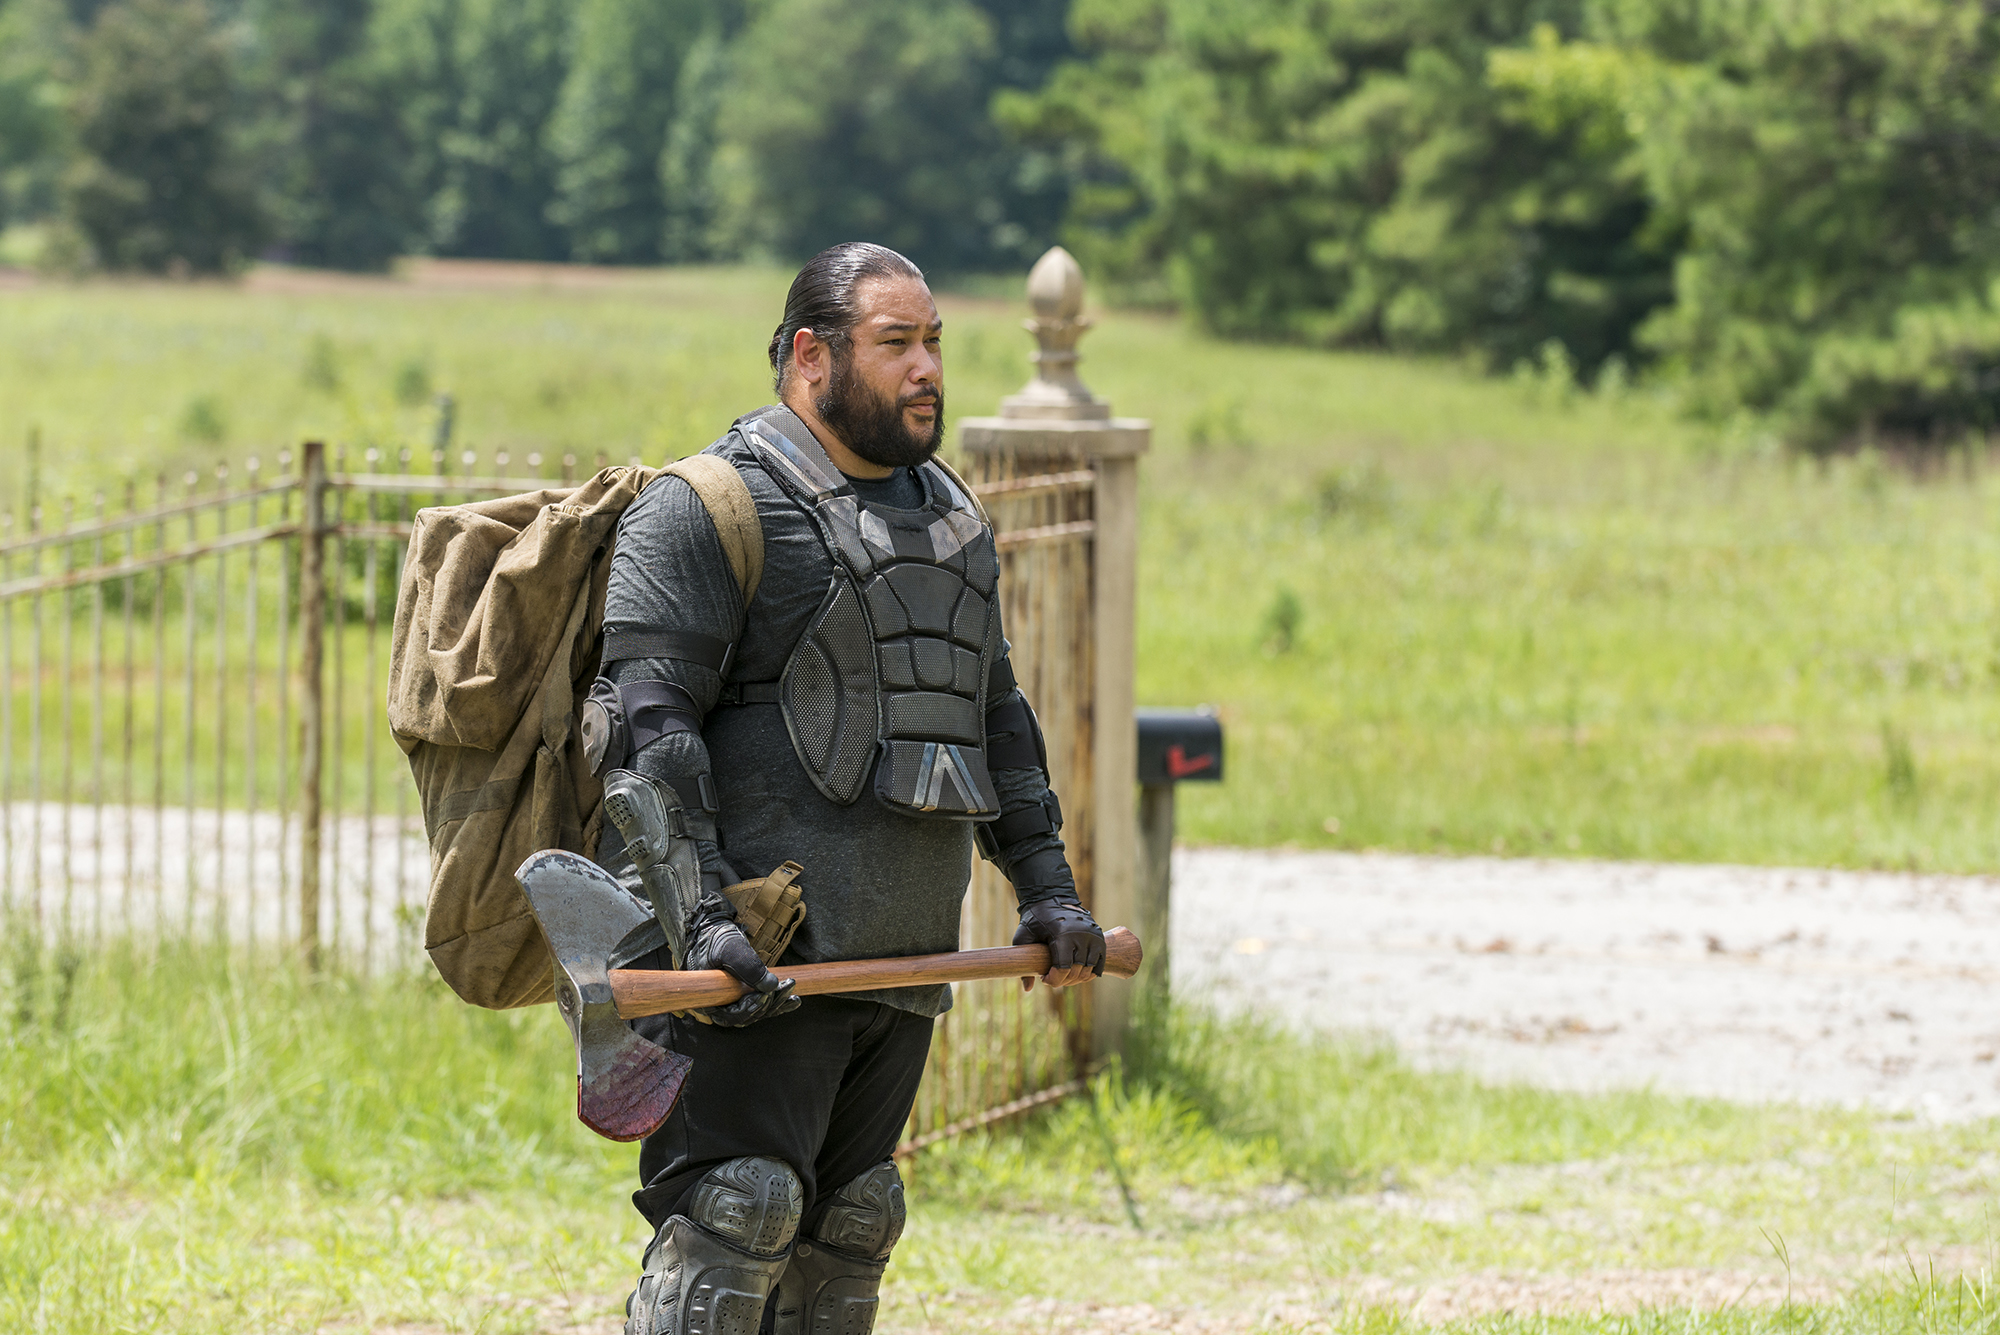 Cooper Andrews as Jerry - The Walking Dead, Season 7, Episode 10